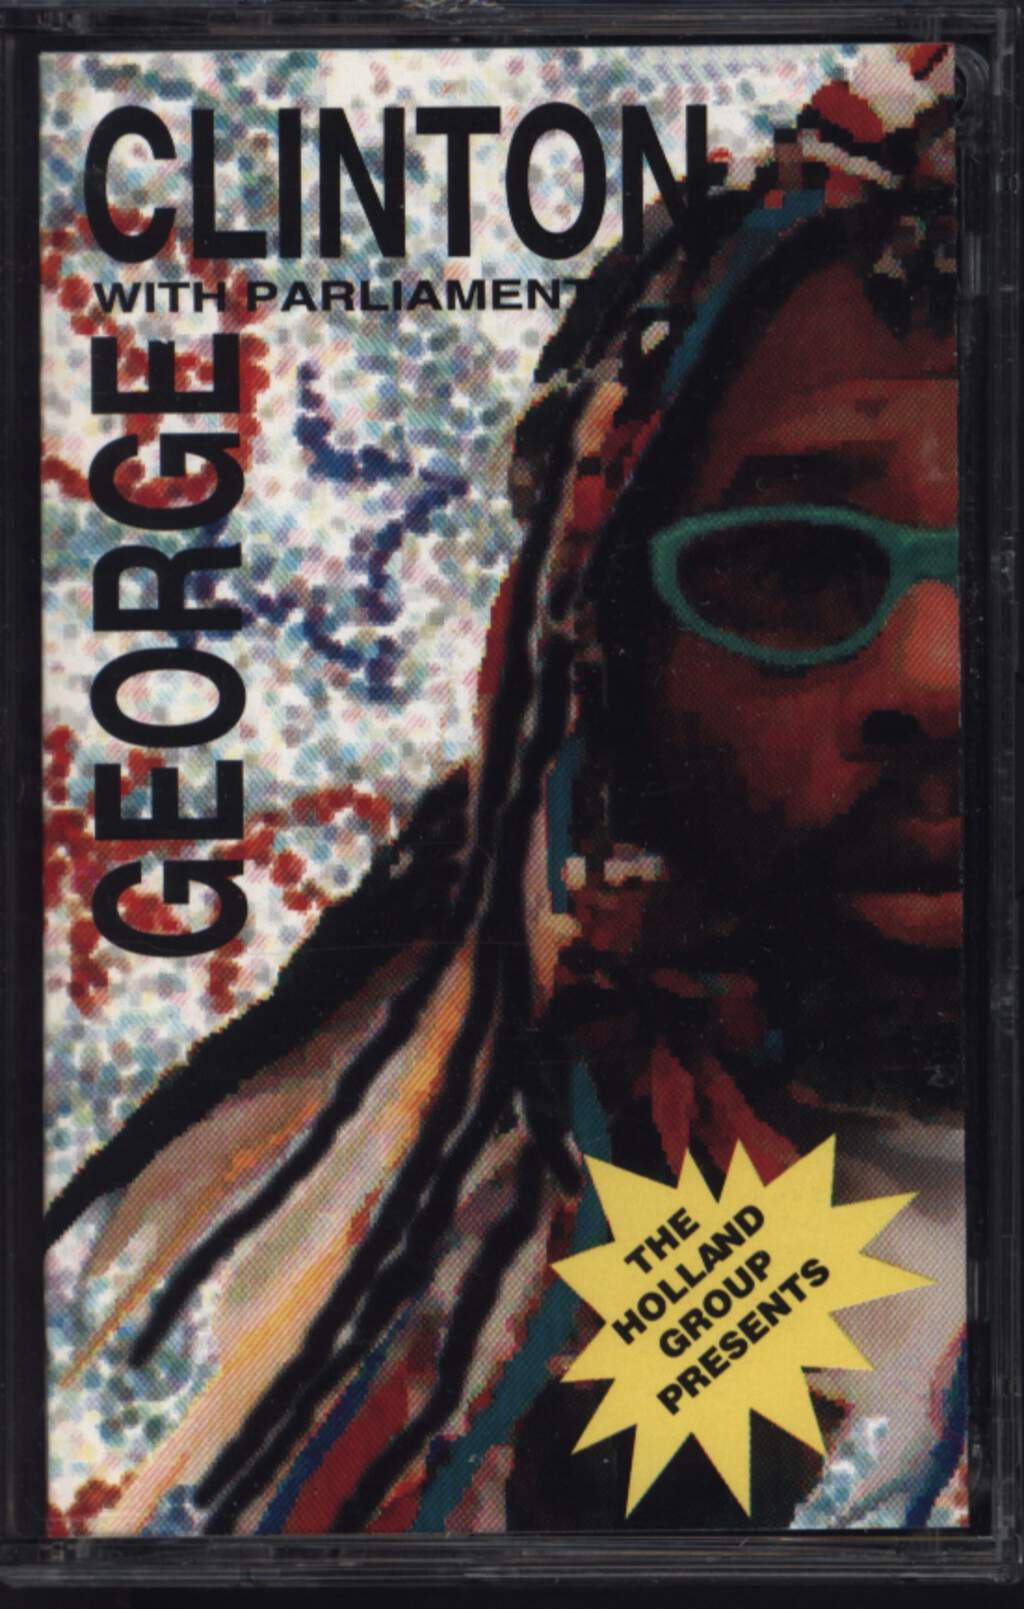 George Clinton: George Clinton With Parliament, Tape